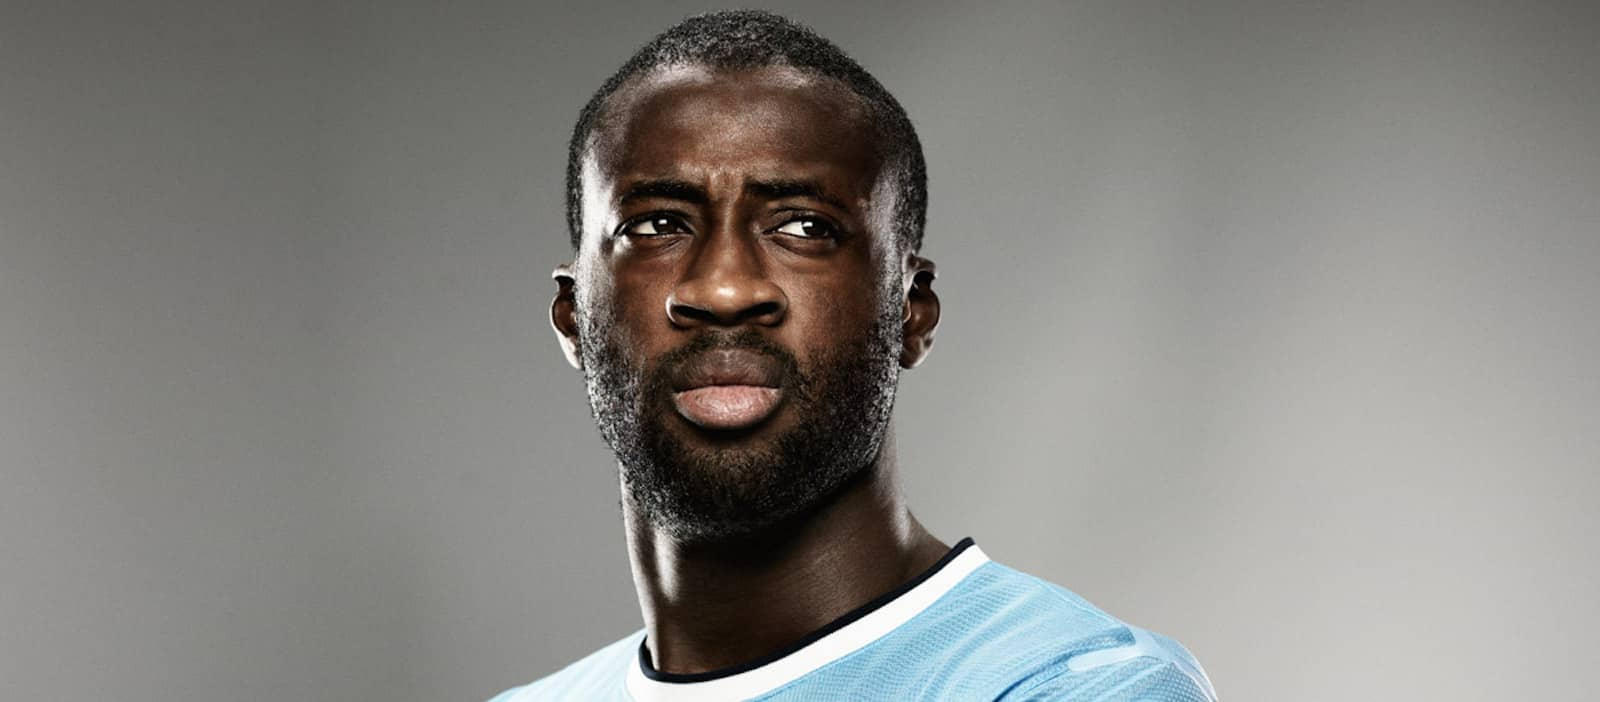 Fans react to the prospect of Yaya Toure joining Manchester United